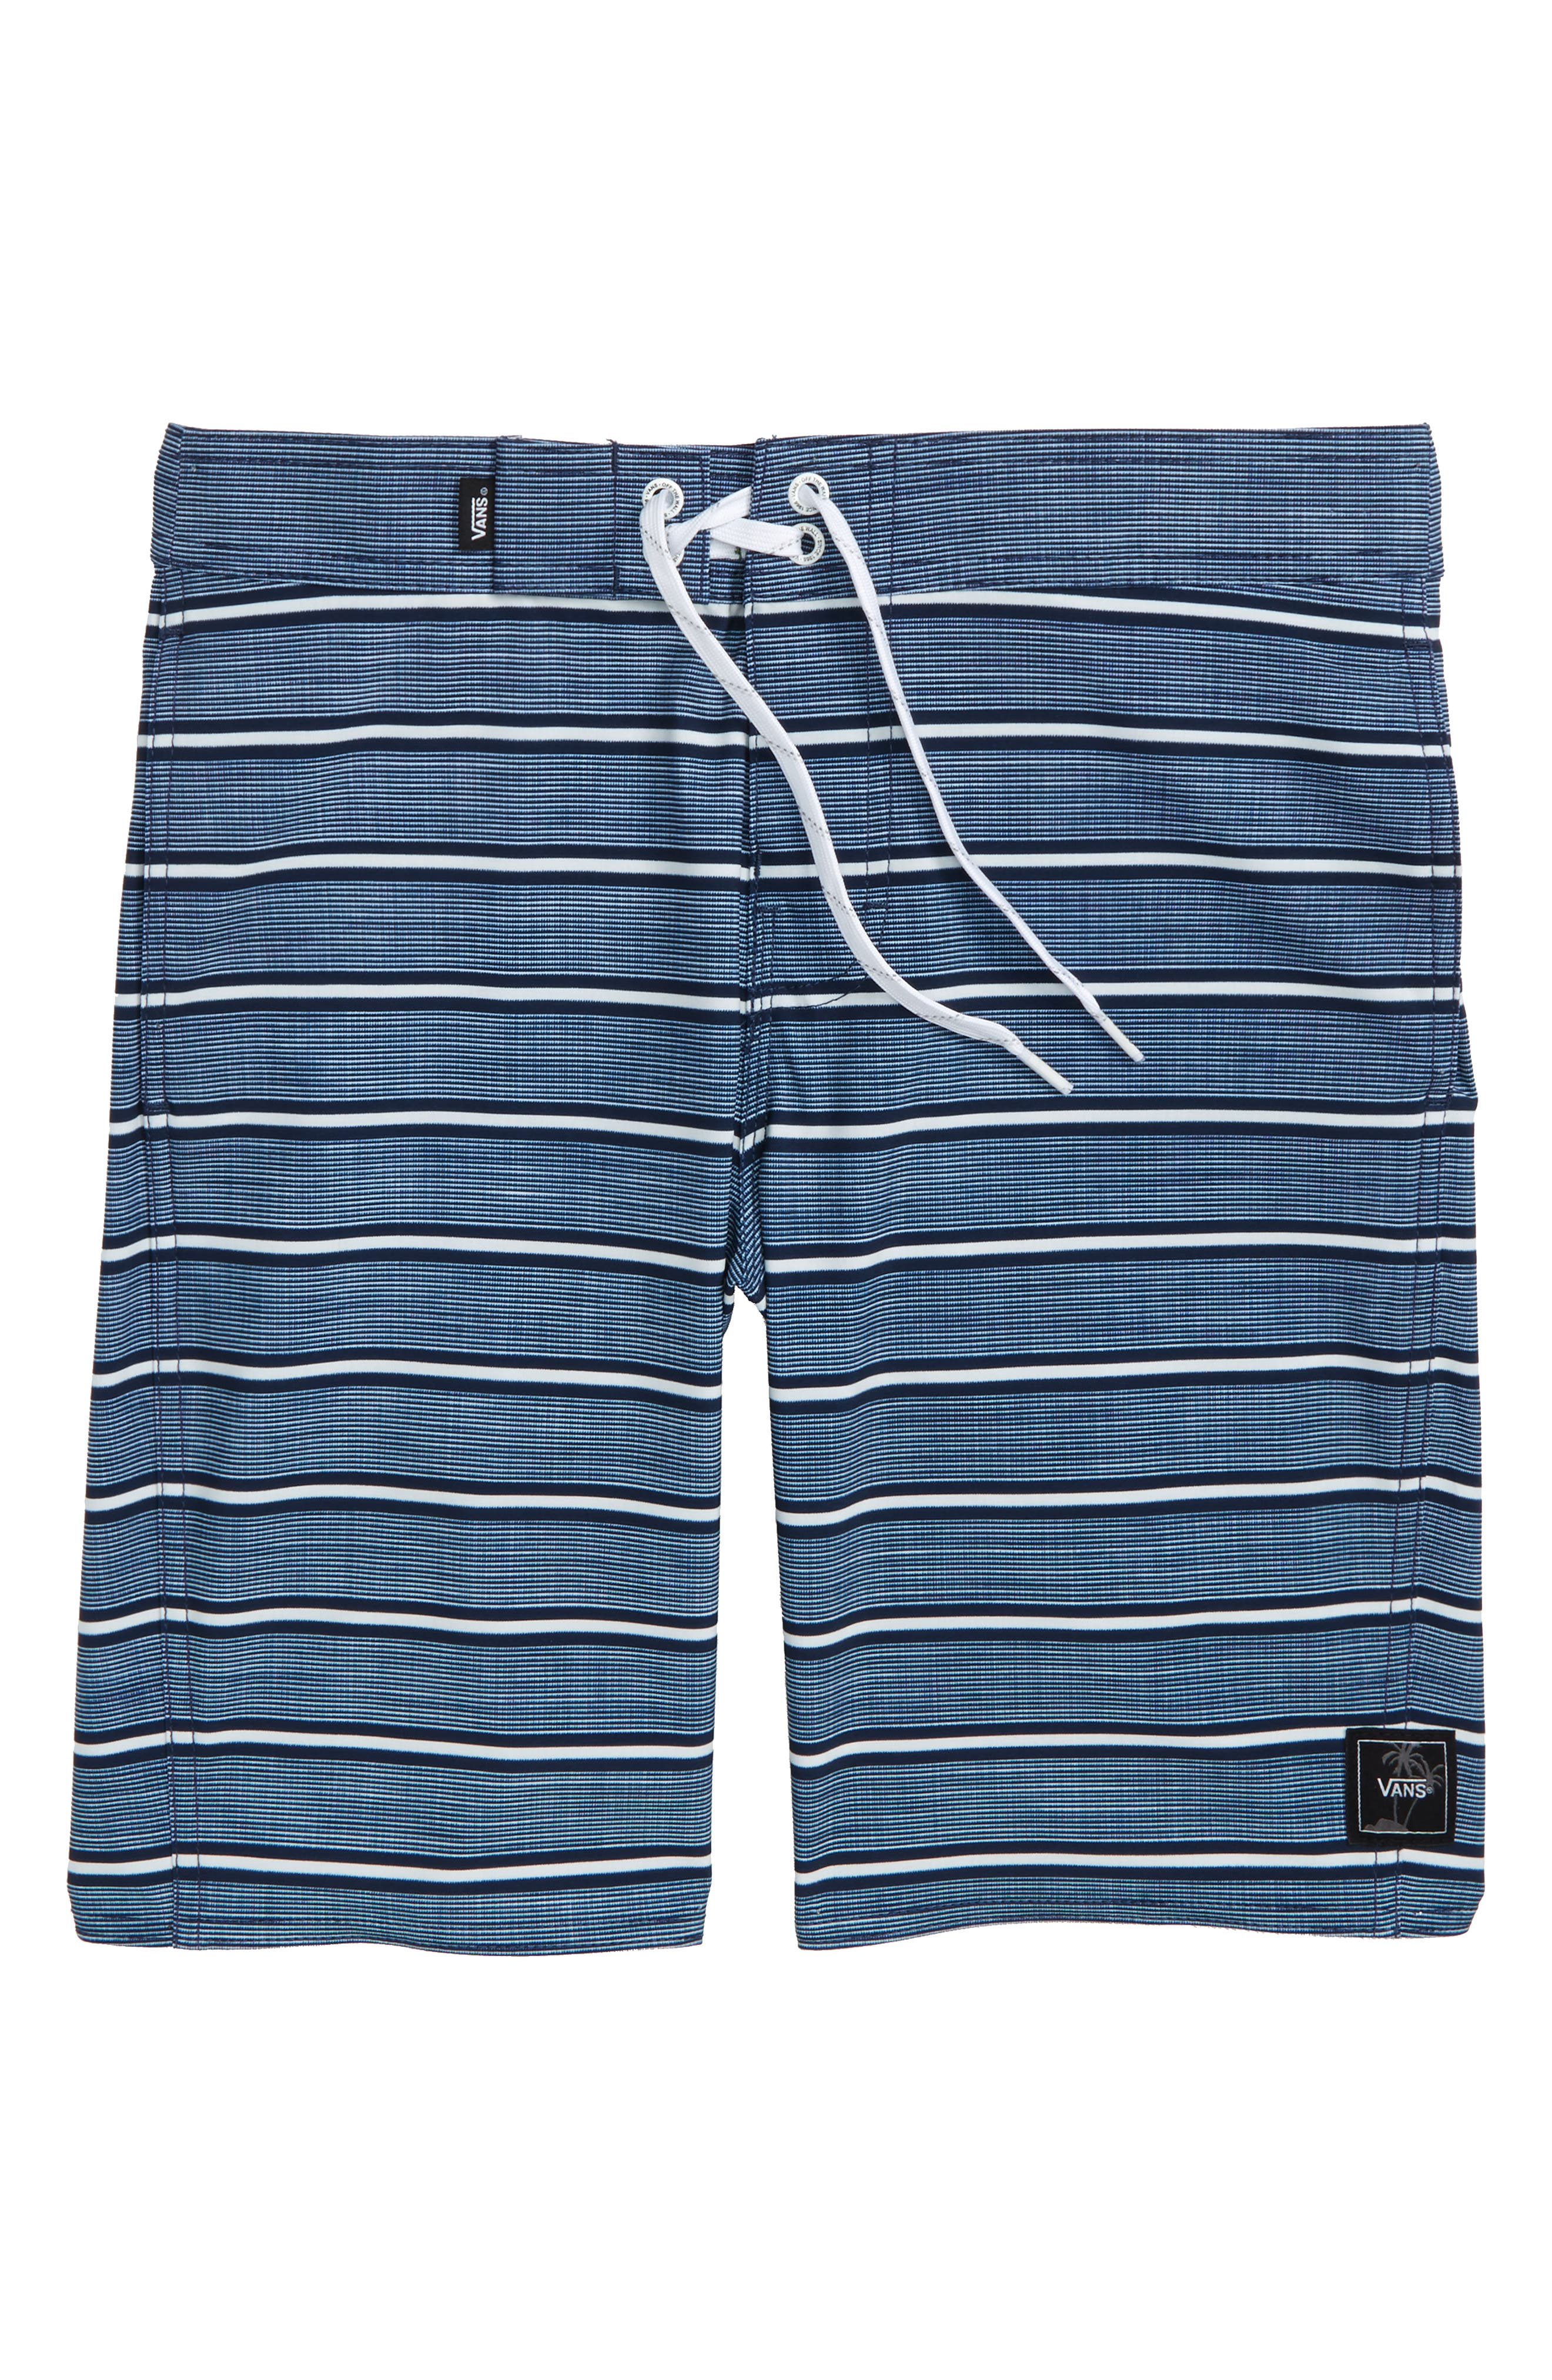 Rooftop Board Shorts,                         Main,                         color,